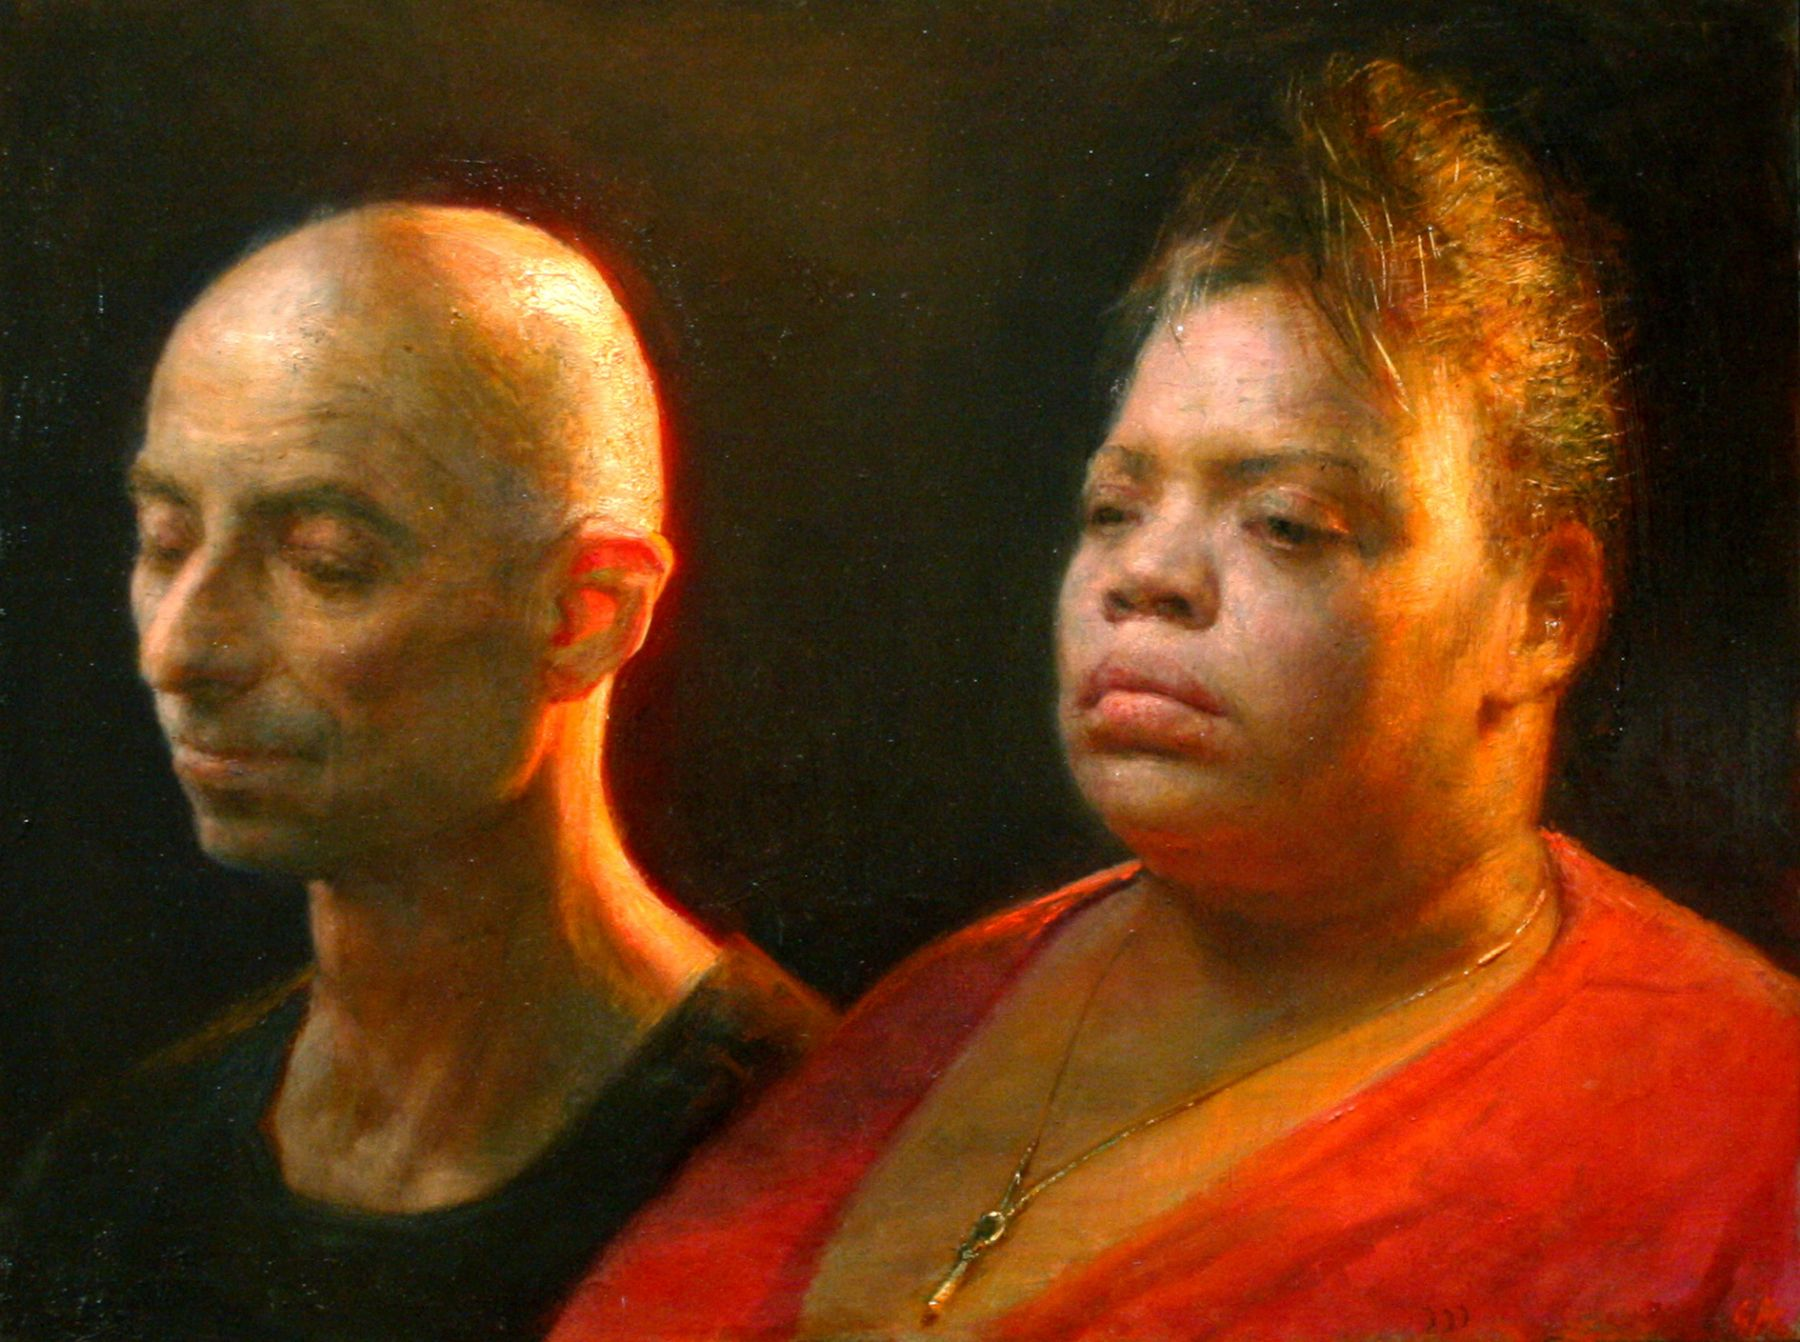 Steven Assael, Kim and Yves, 2008, oil on panel, 18 x 24 inches